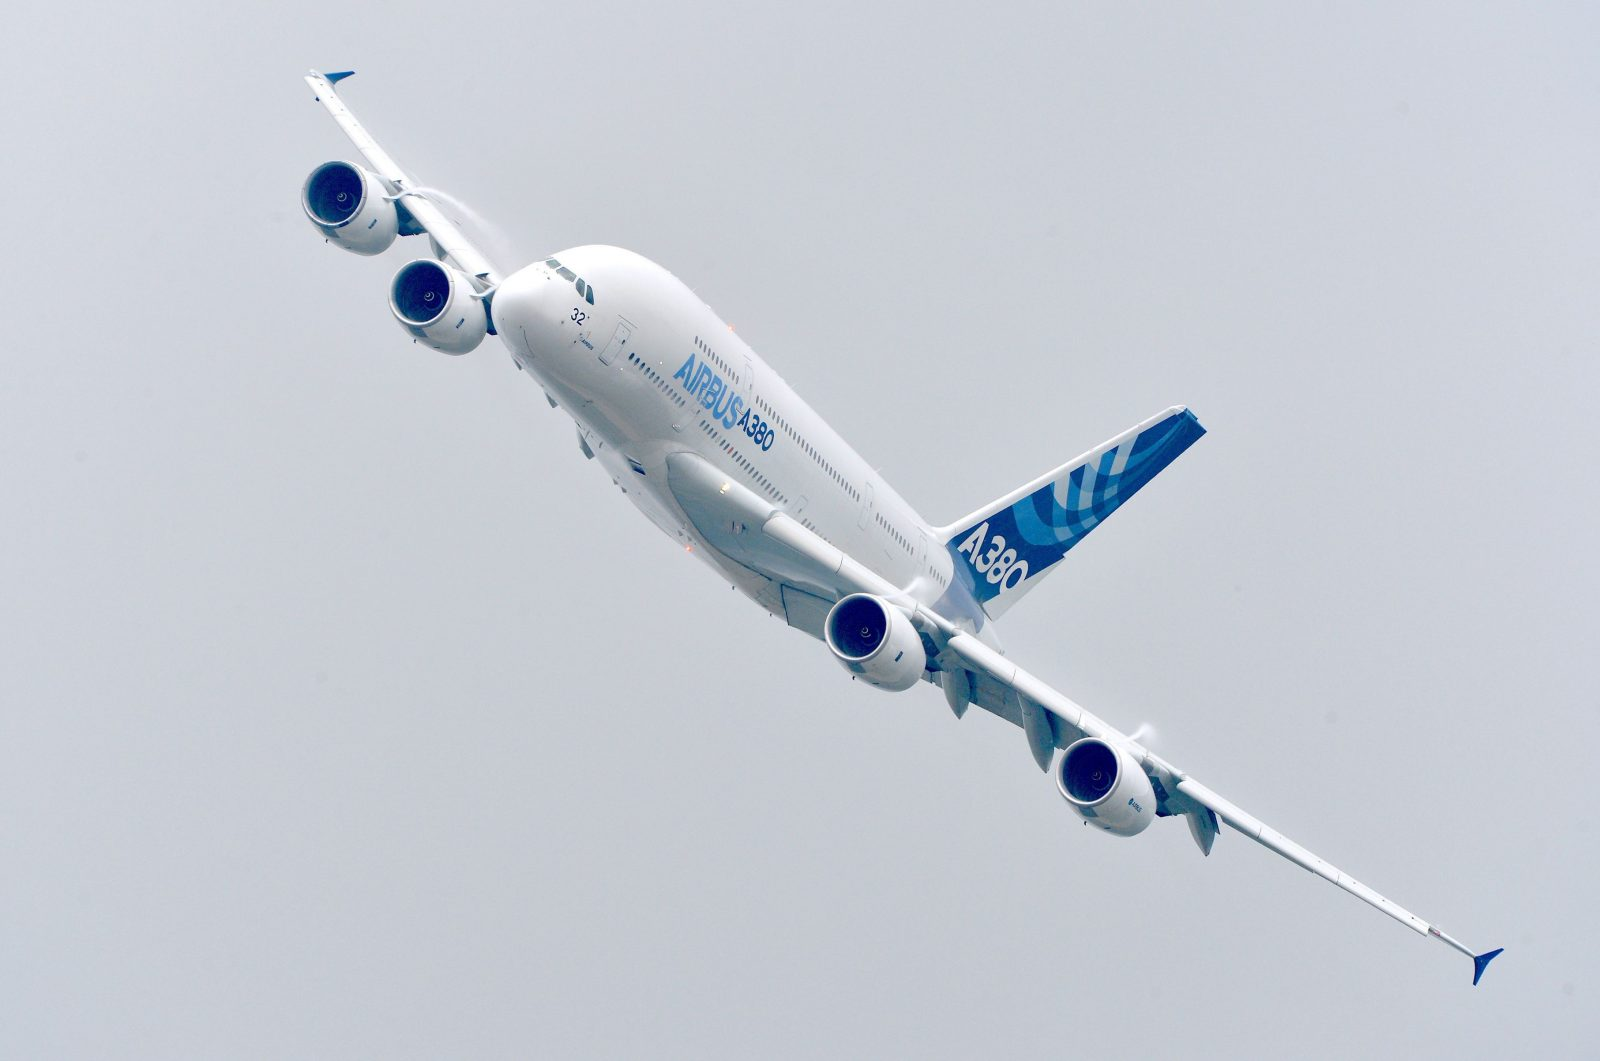 How Much Does An Airbus A380 Cost? List Prices Go Up As Future of Project Hangs in the Balance